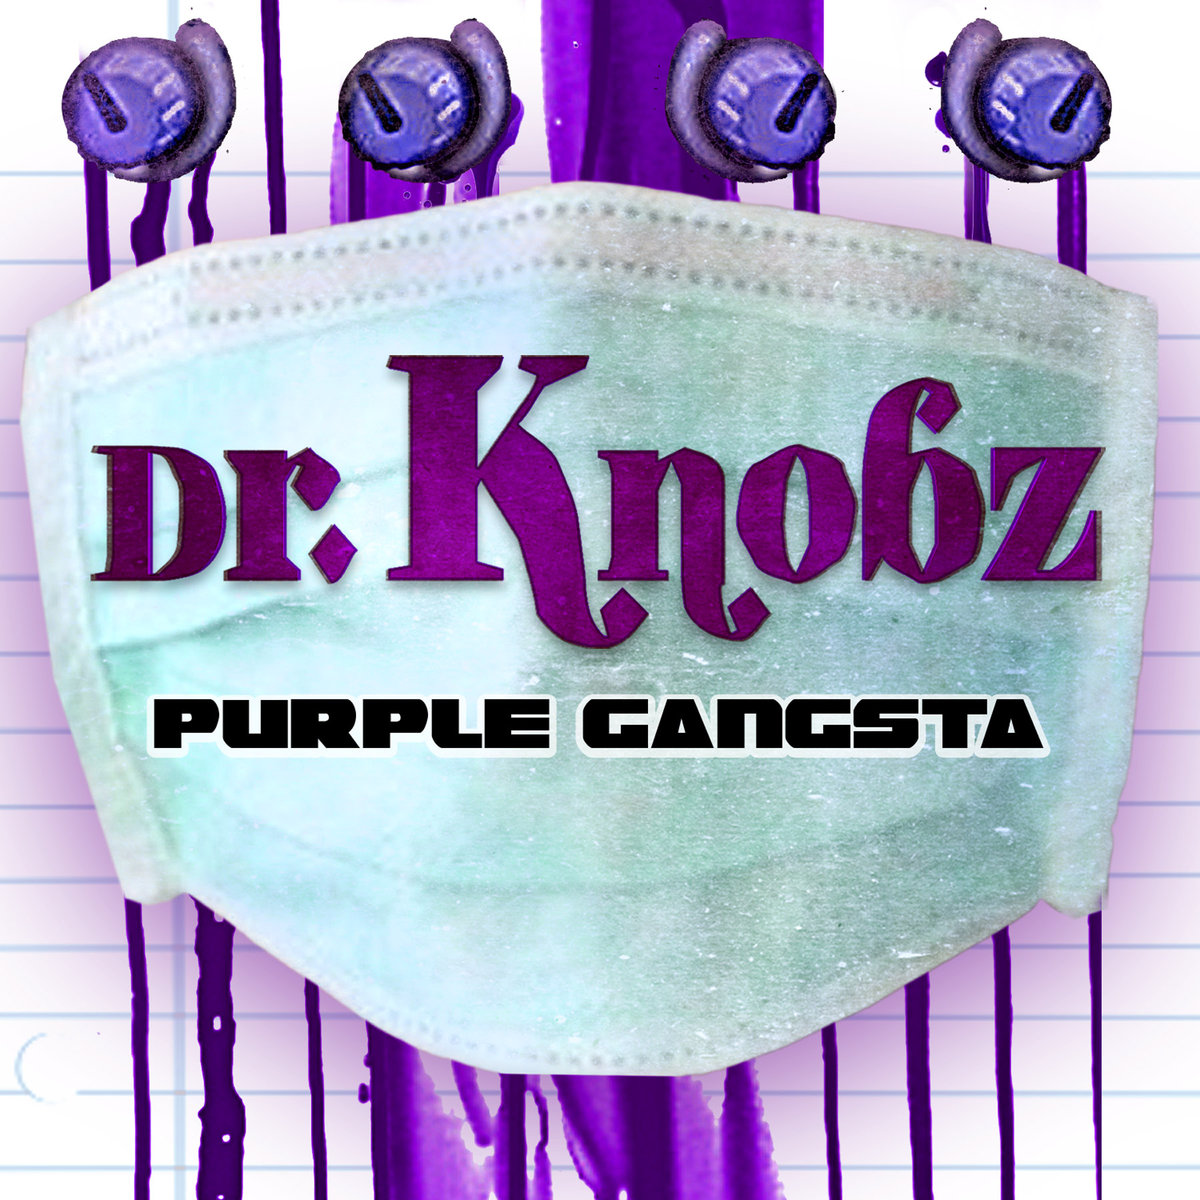 Dr. Knobz - Purple Gangsta (DZ Remix) @ 'Purple Gangsta' album (electronic, dubstep)